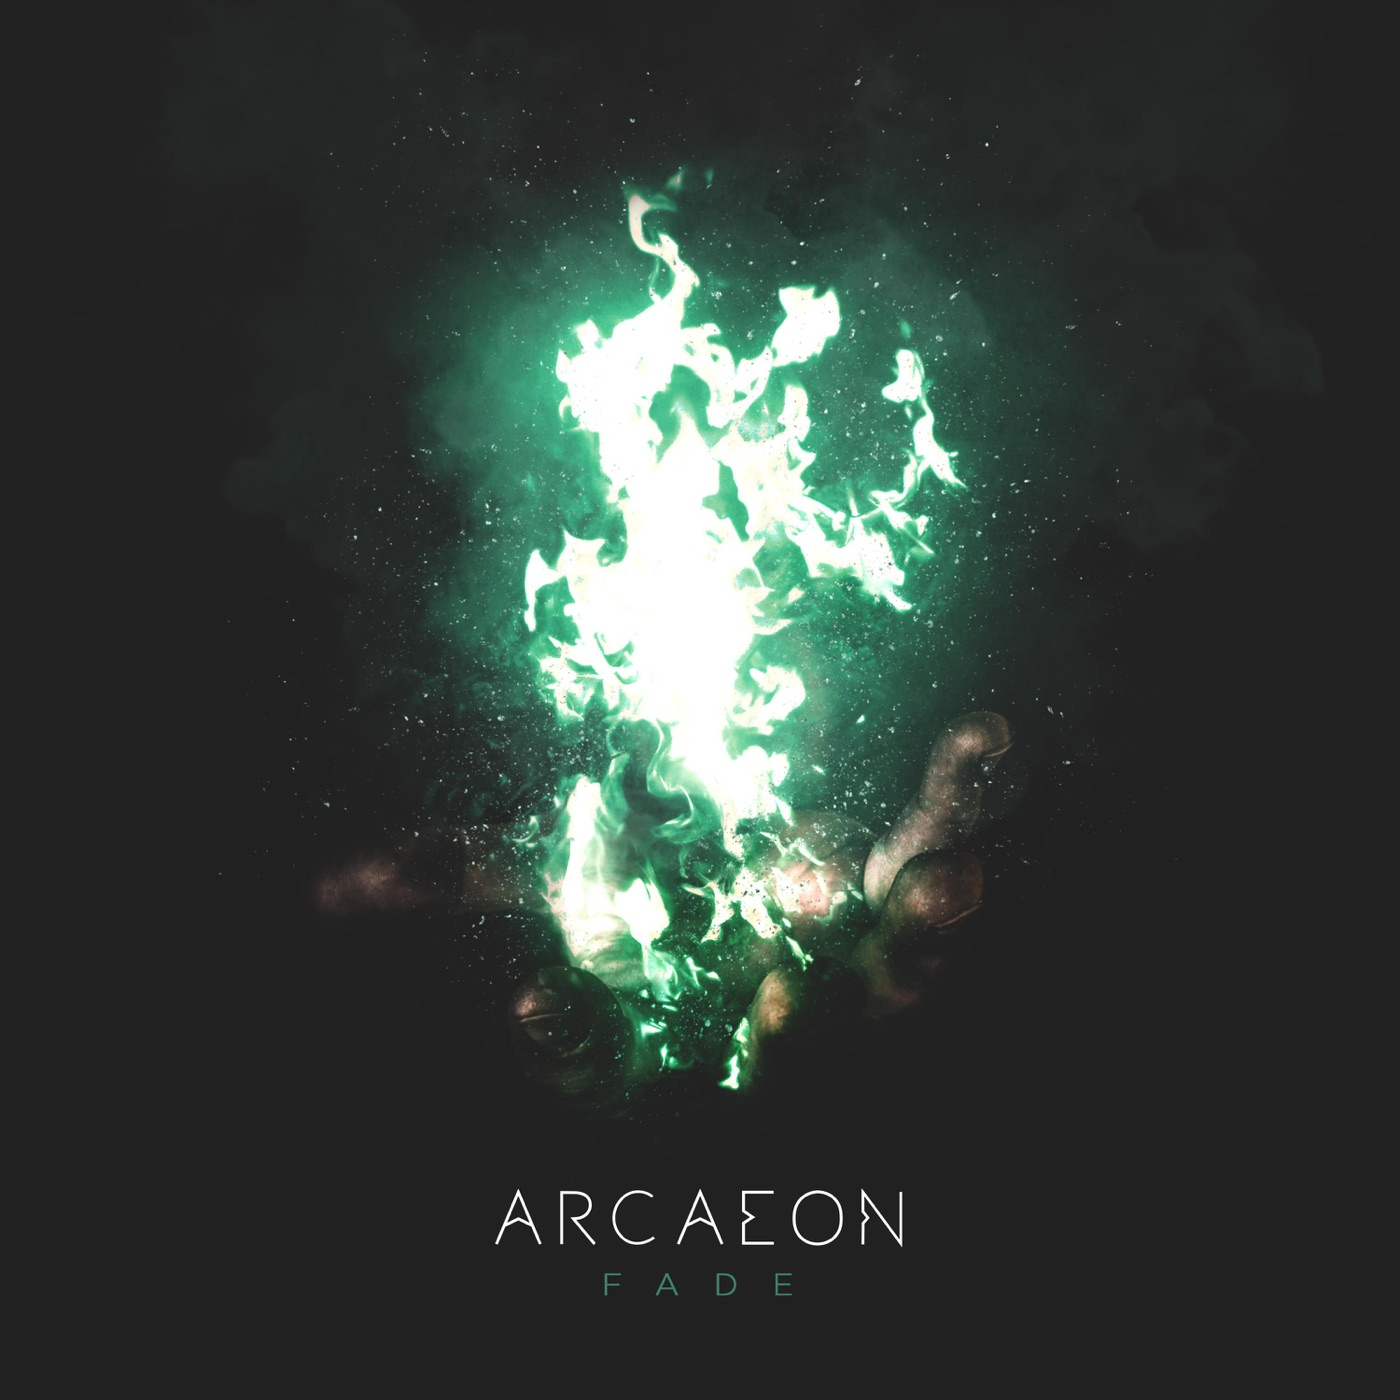 Arcaeon - Fade [single] (2017)